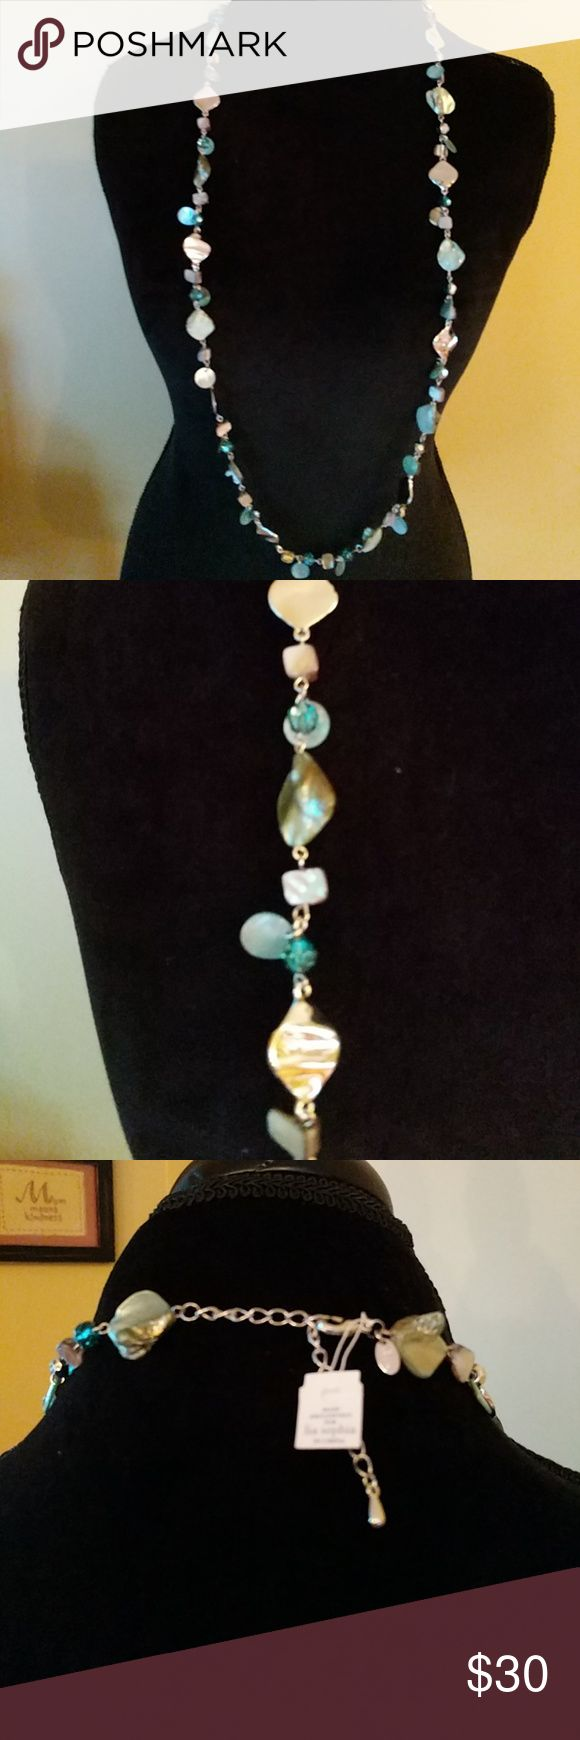 NWT Lia Sophia necklace This necklace is beautiful show tones of silver, aqua and blue. This necklace is absolutely stunning can be worn long or doubled up for a shorter version. Lia Sophia Accessories